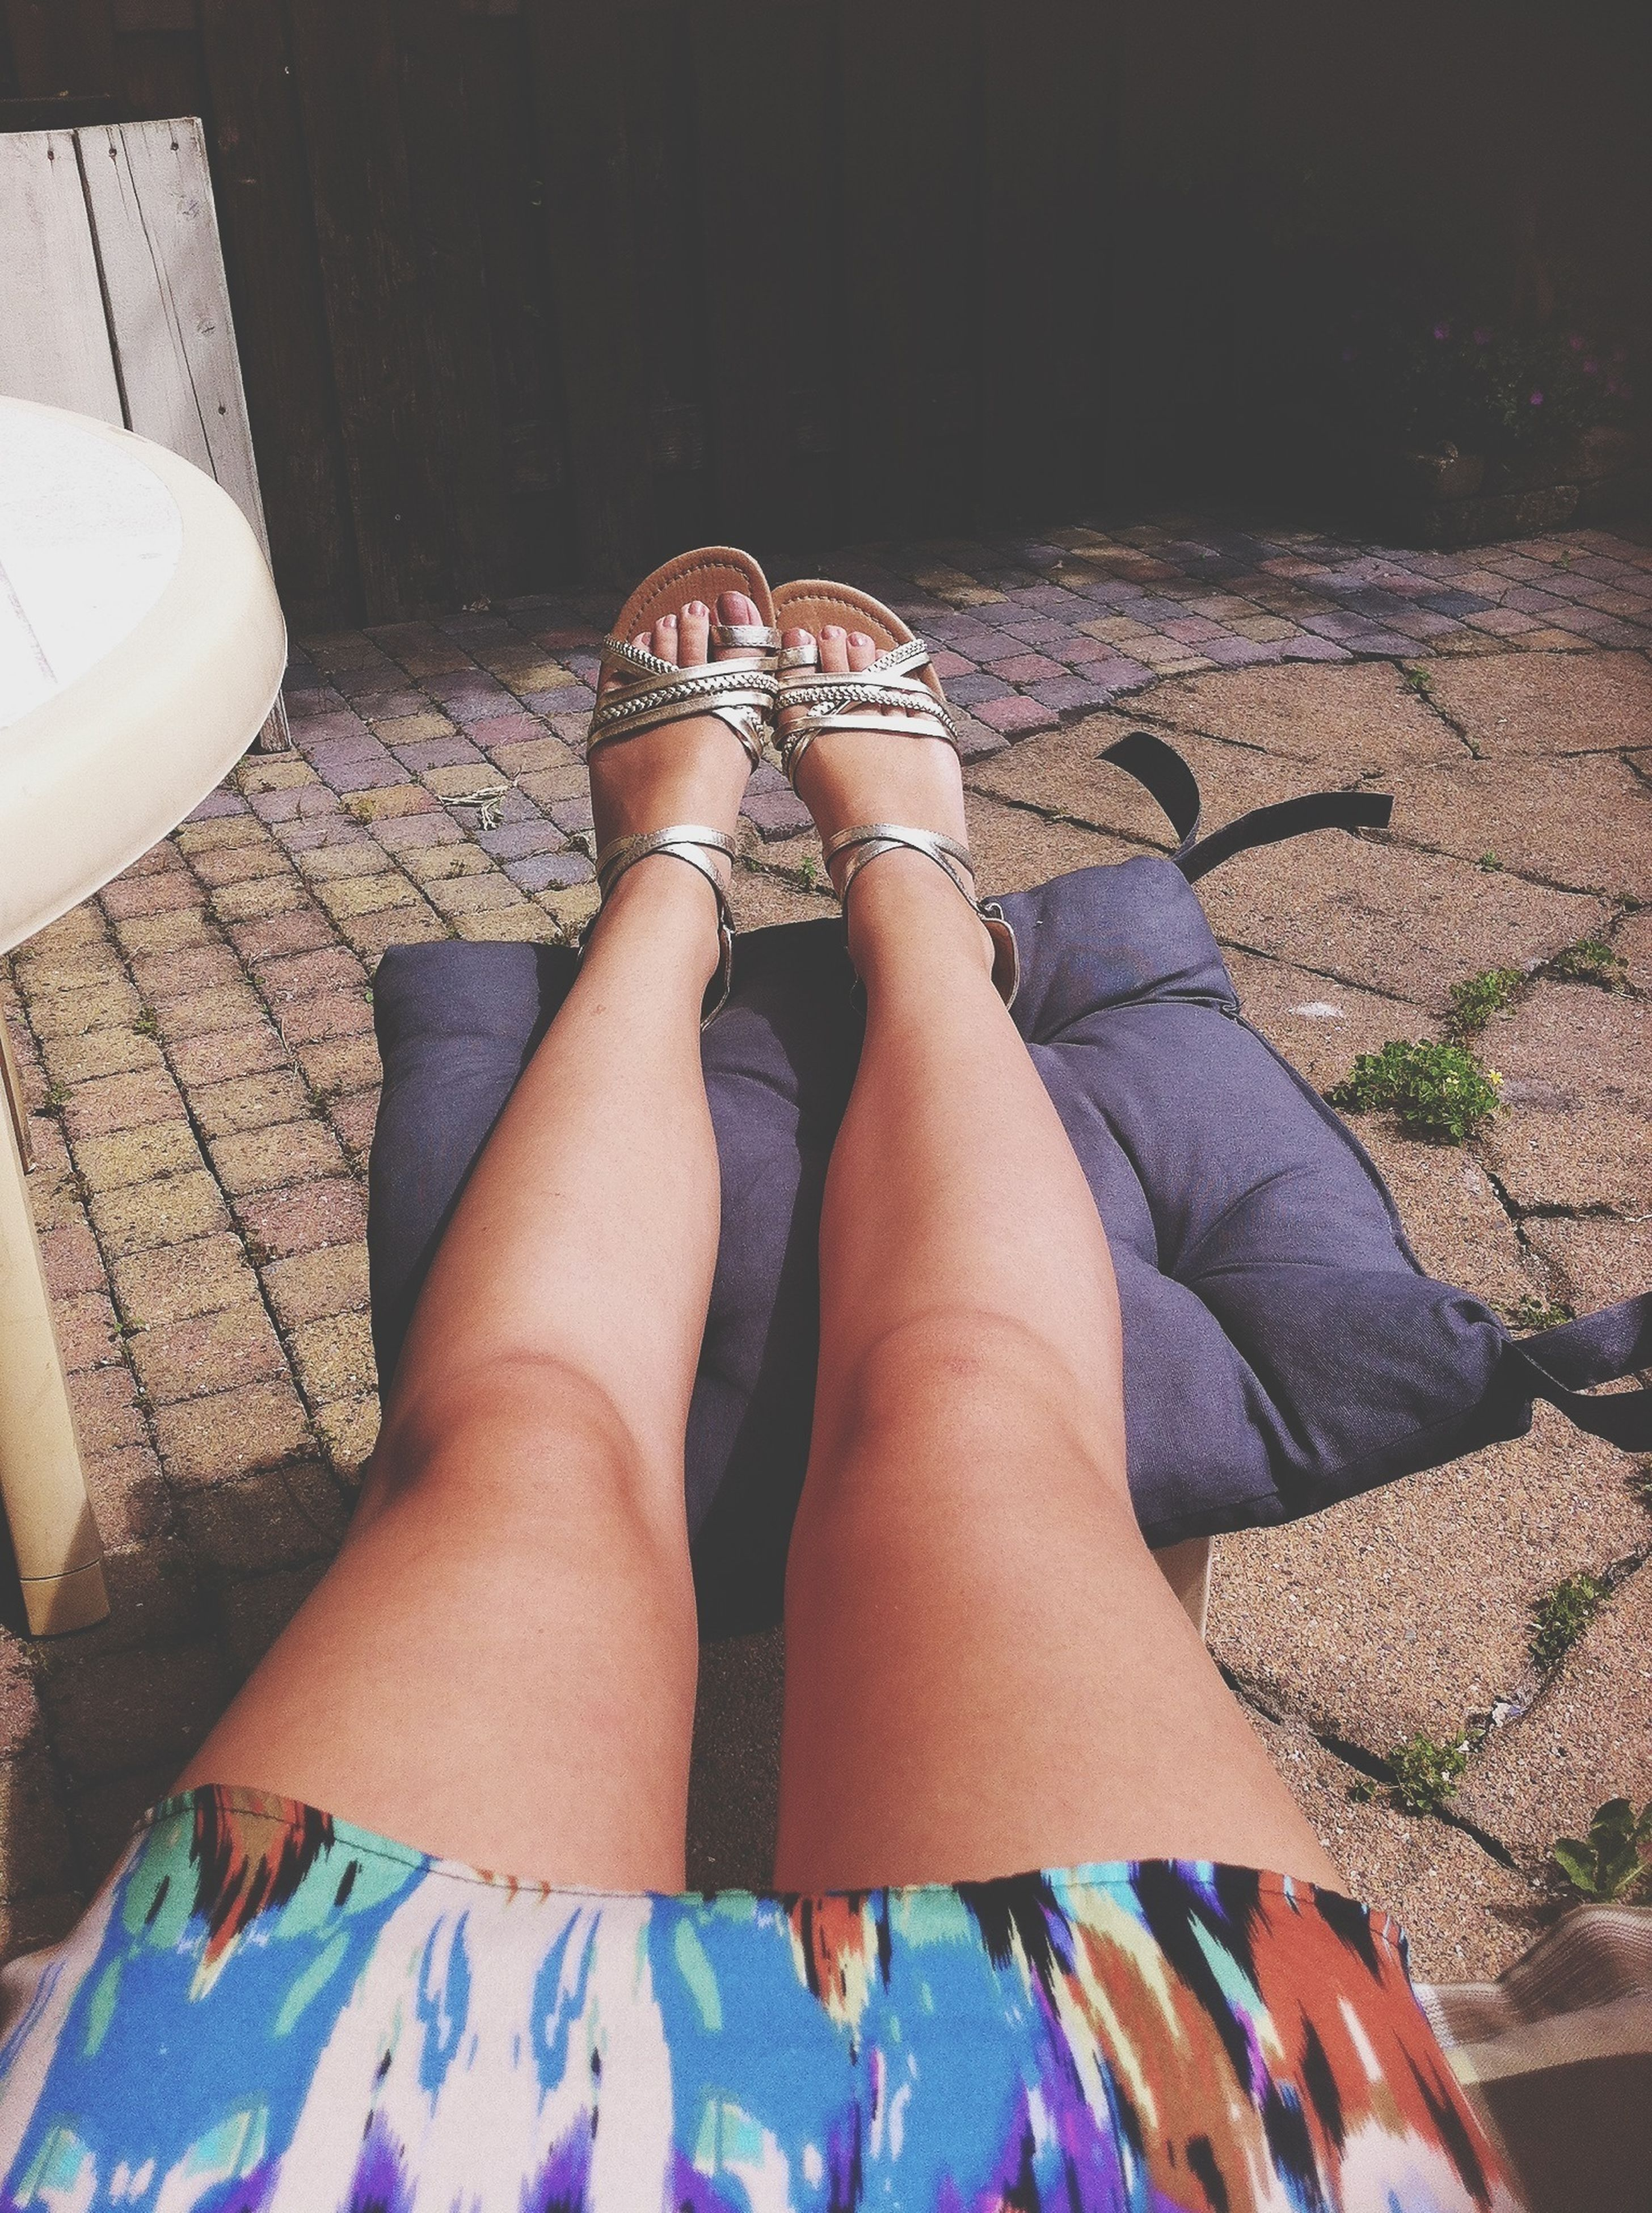 low section, person, personal perspective, lifestyles, shoe, relaxation, sitting, leisure activity, human foot, high angle view, footwear, jeans, casual clothing, legs crossed at ankle, sunlight, standing